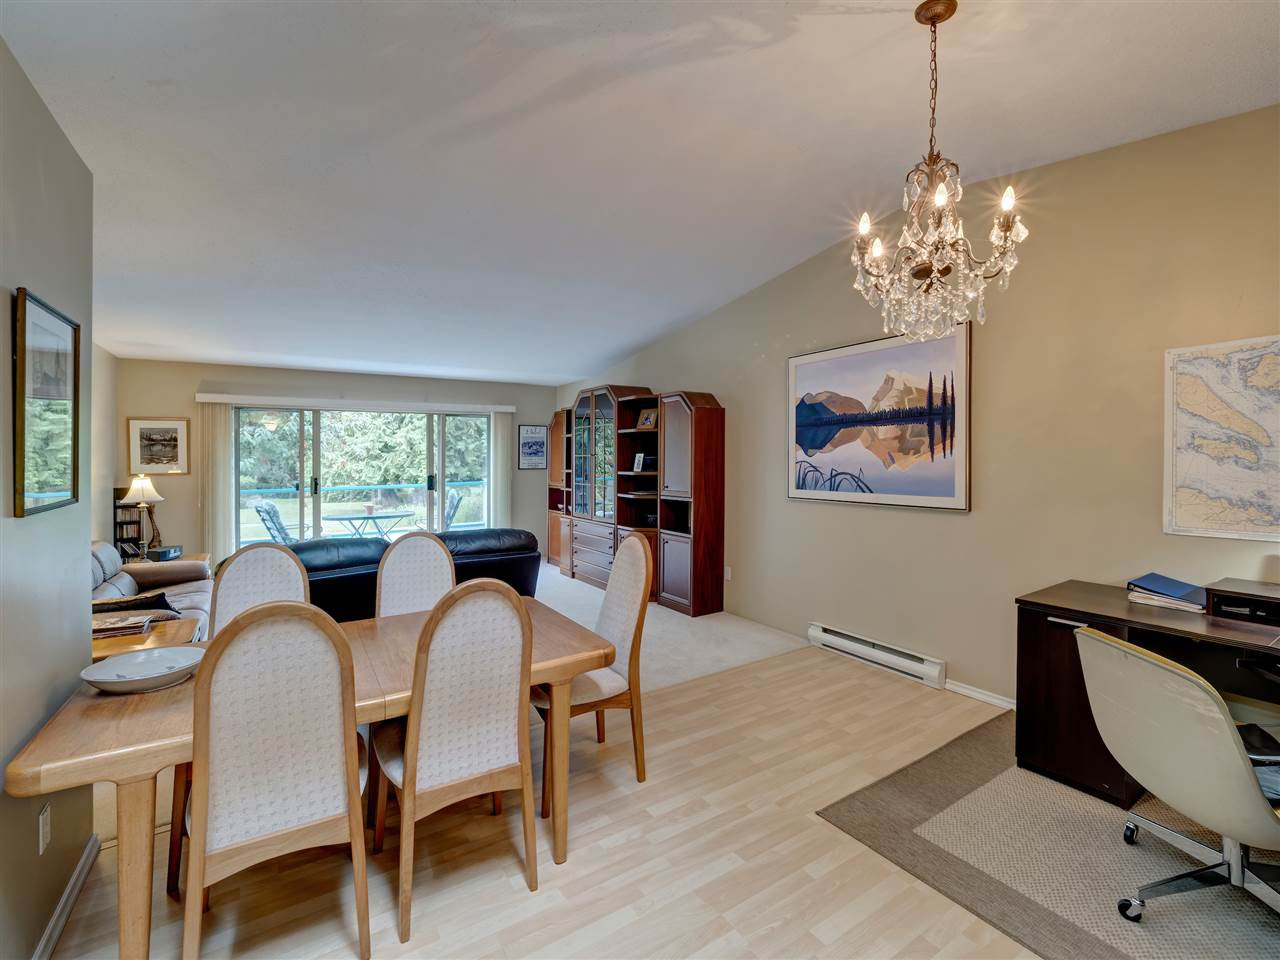 """Photo 10: Photos: 41 555 EAGLECREST Drive in Gibsons: Gibsons & Area Townhouse for sale in """"GEORGIA MIRAGE"""" (Sunshine Coast)  : MLS®# R2485008"""